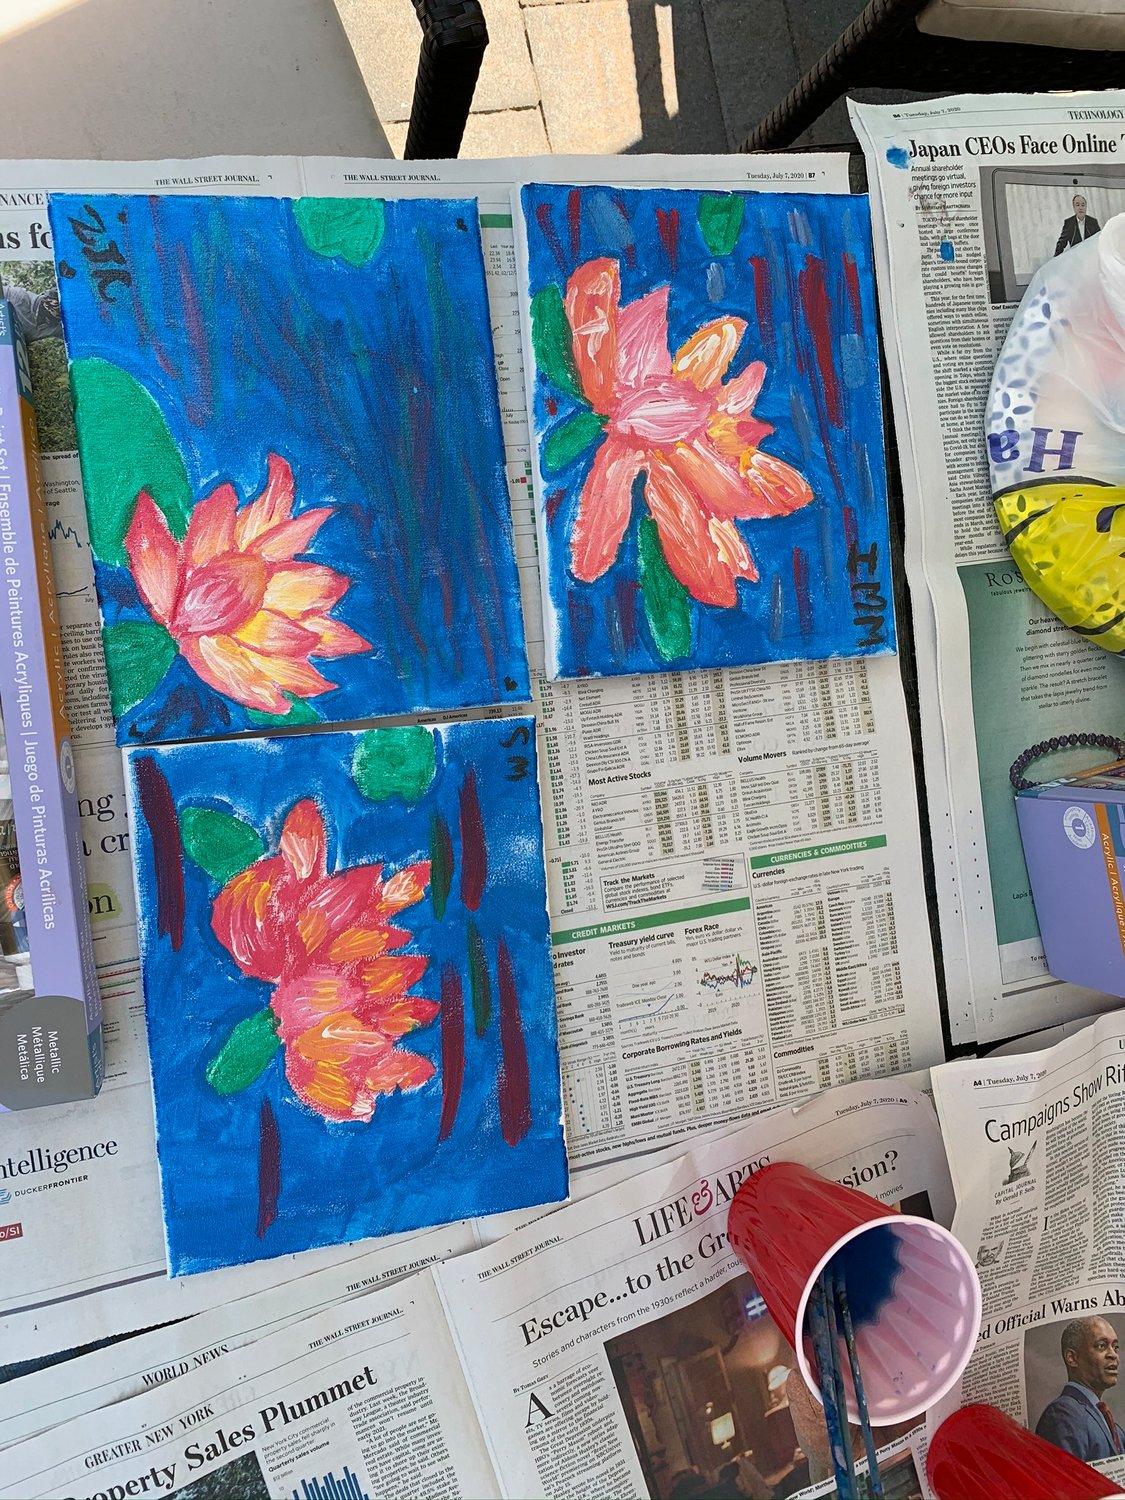 Artwork created by the children at Mia Gwitrzman's backyard art camp.